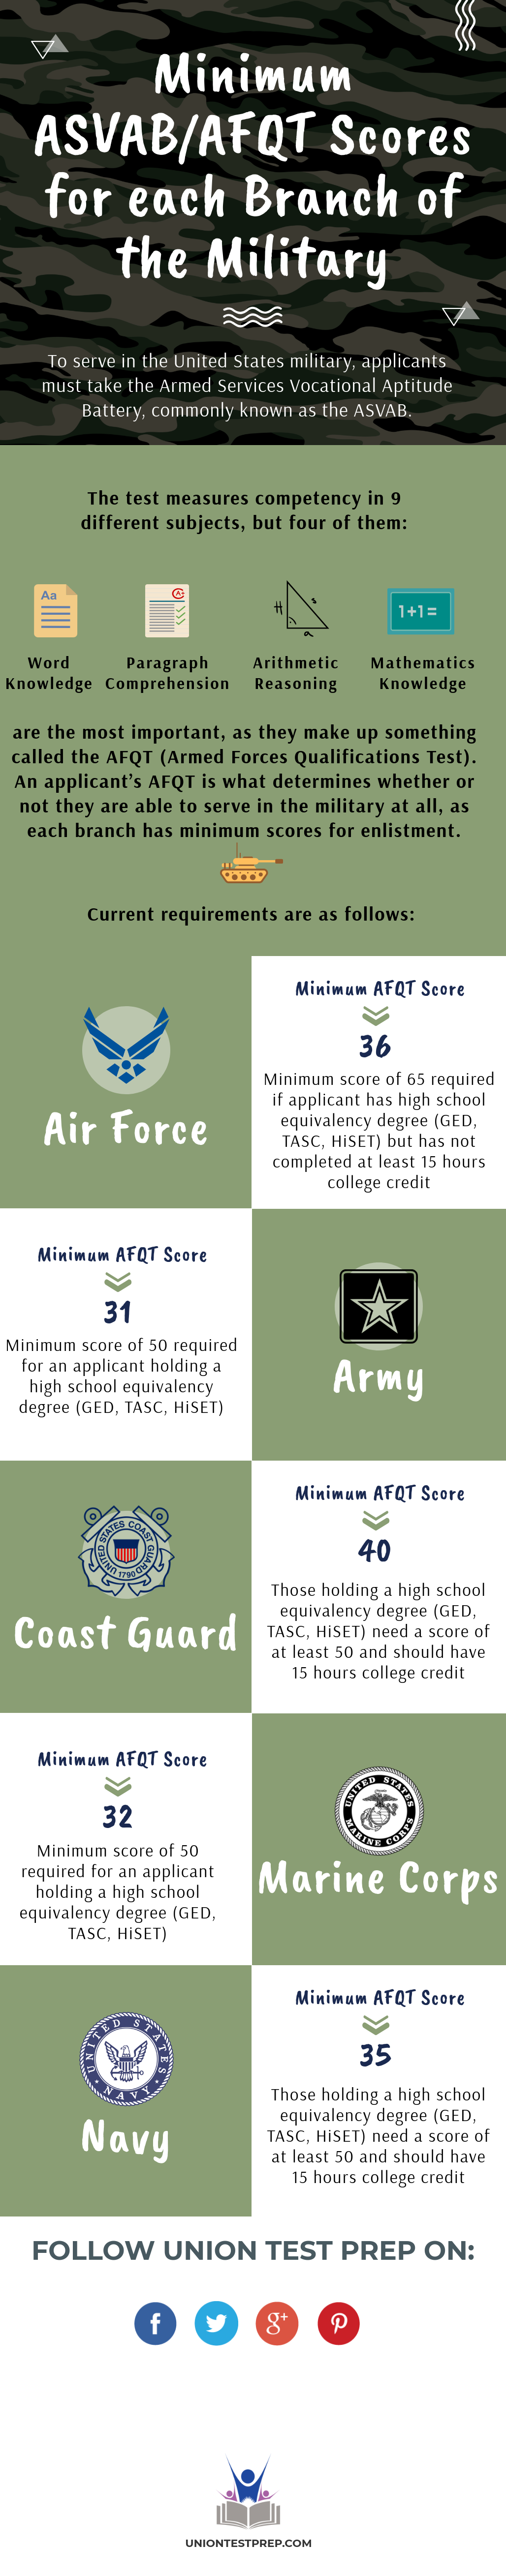 Thinking of joining the military but not sure what ASVAB